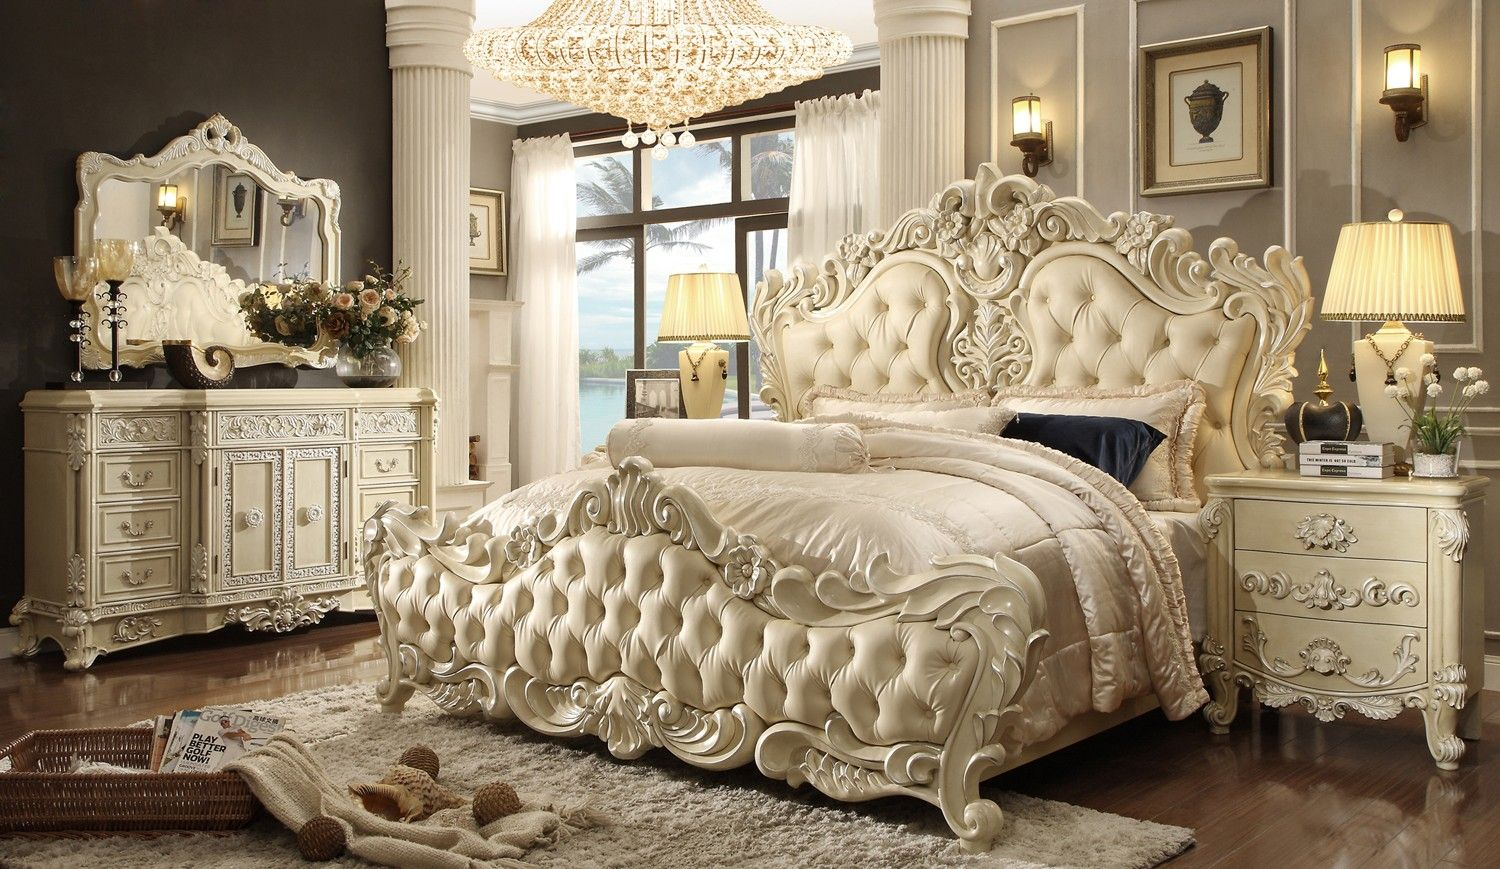 Amazing HOMEY DESIGN HD 5800TRADITIONAL VICTORIAN LUXURIOUS 5 PCS KING BEDROOM SET